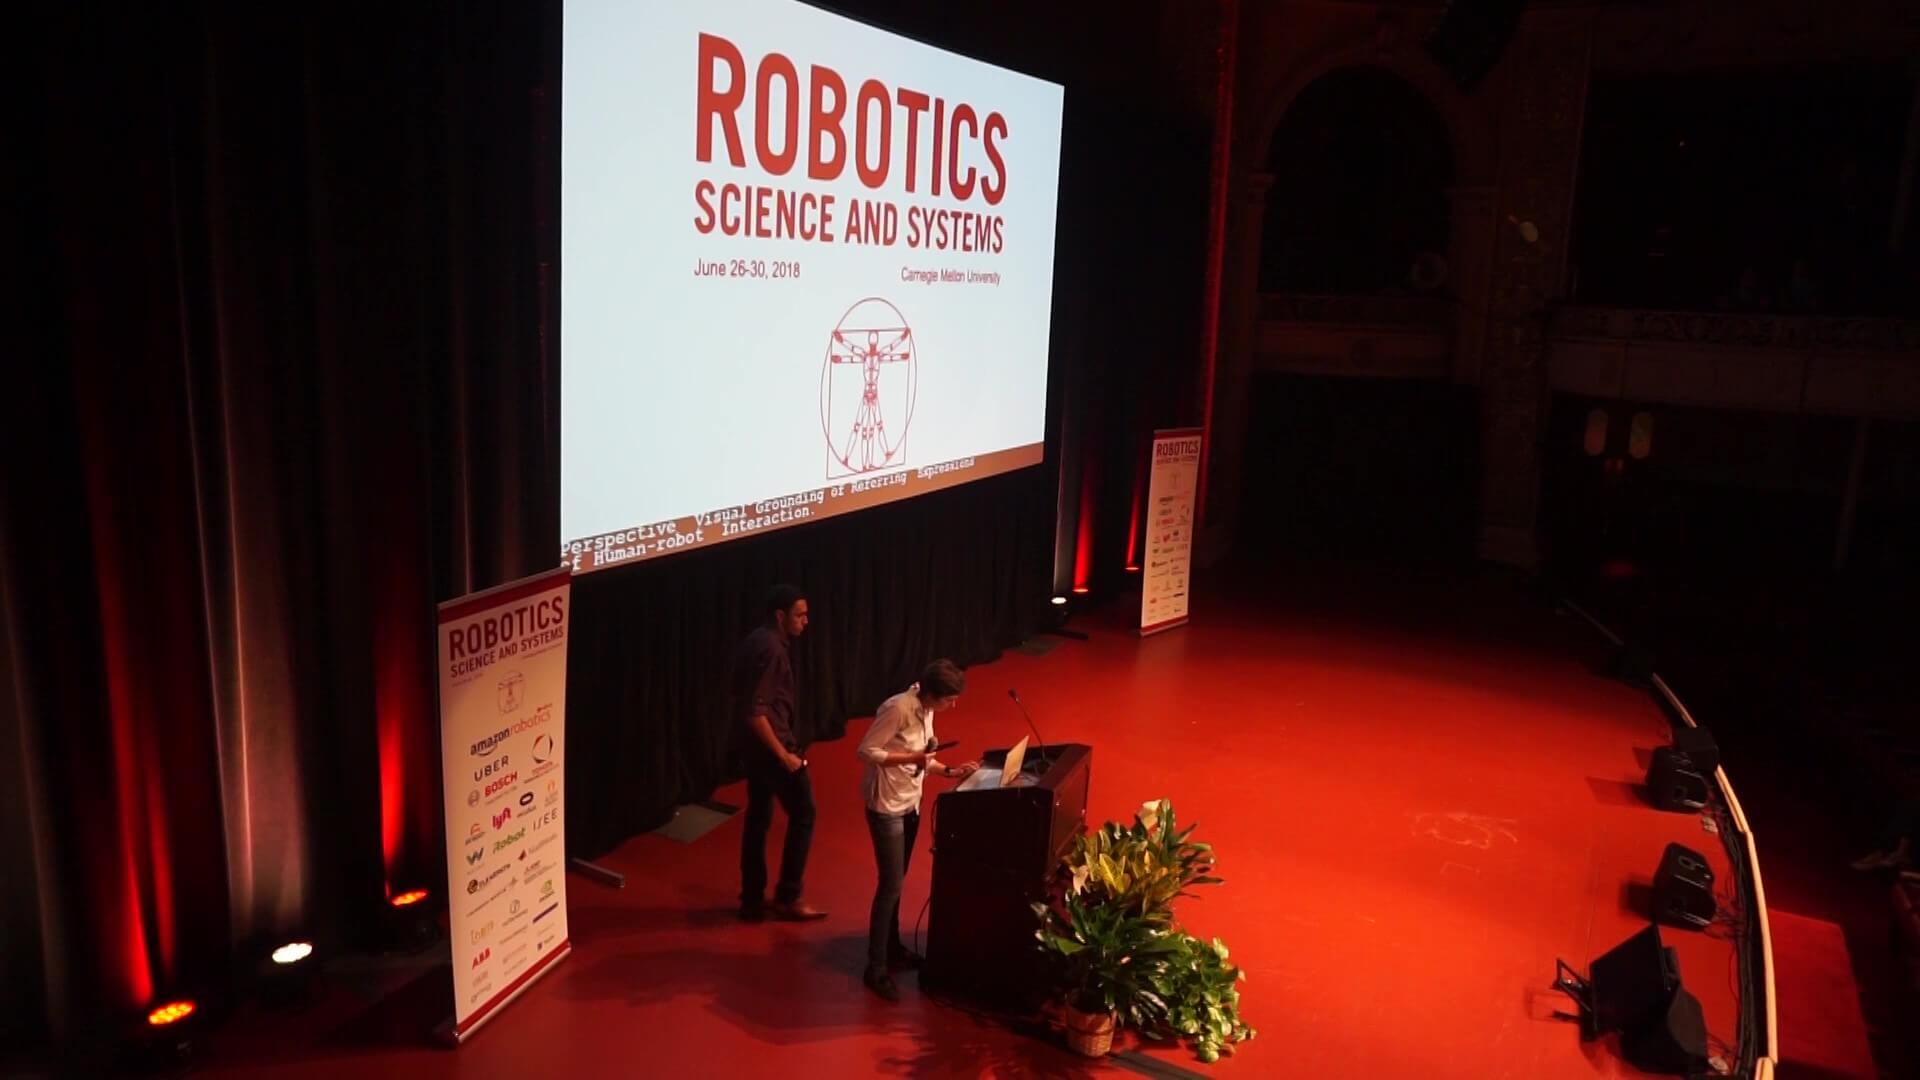 Inside an AI Conference - Robotics Science and Systems